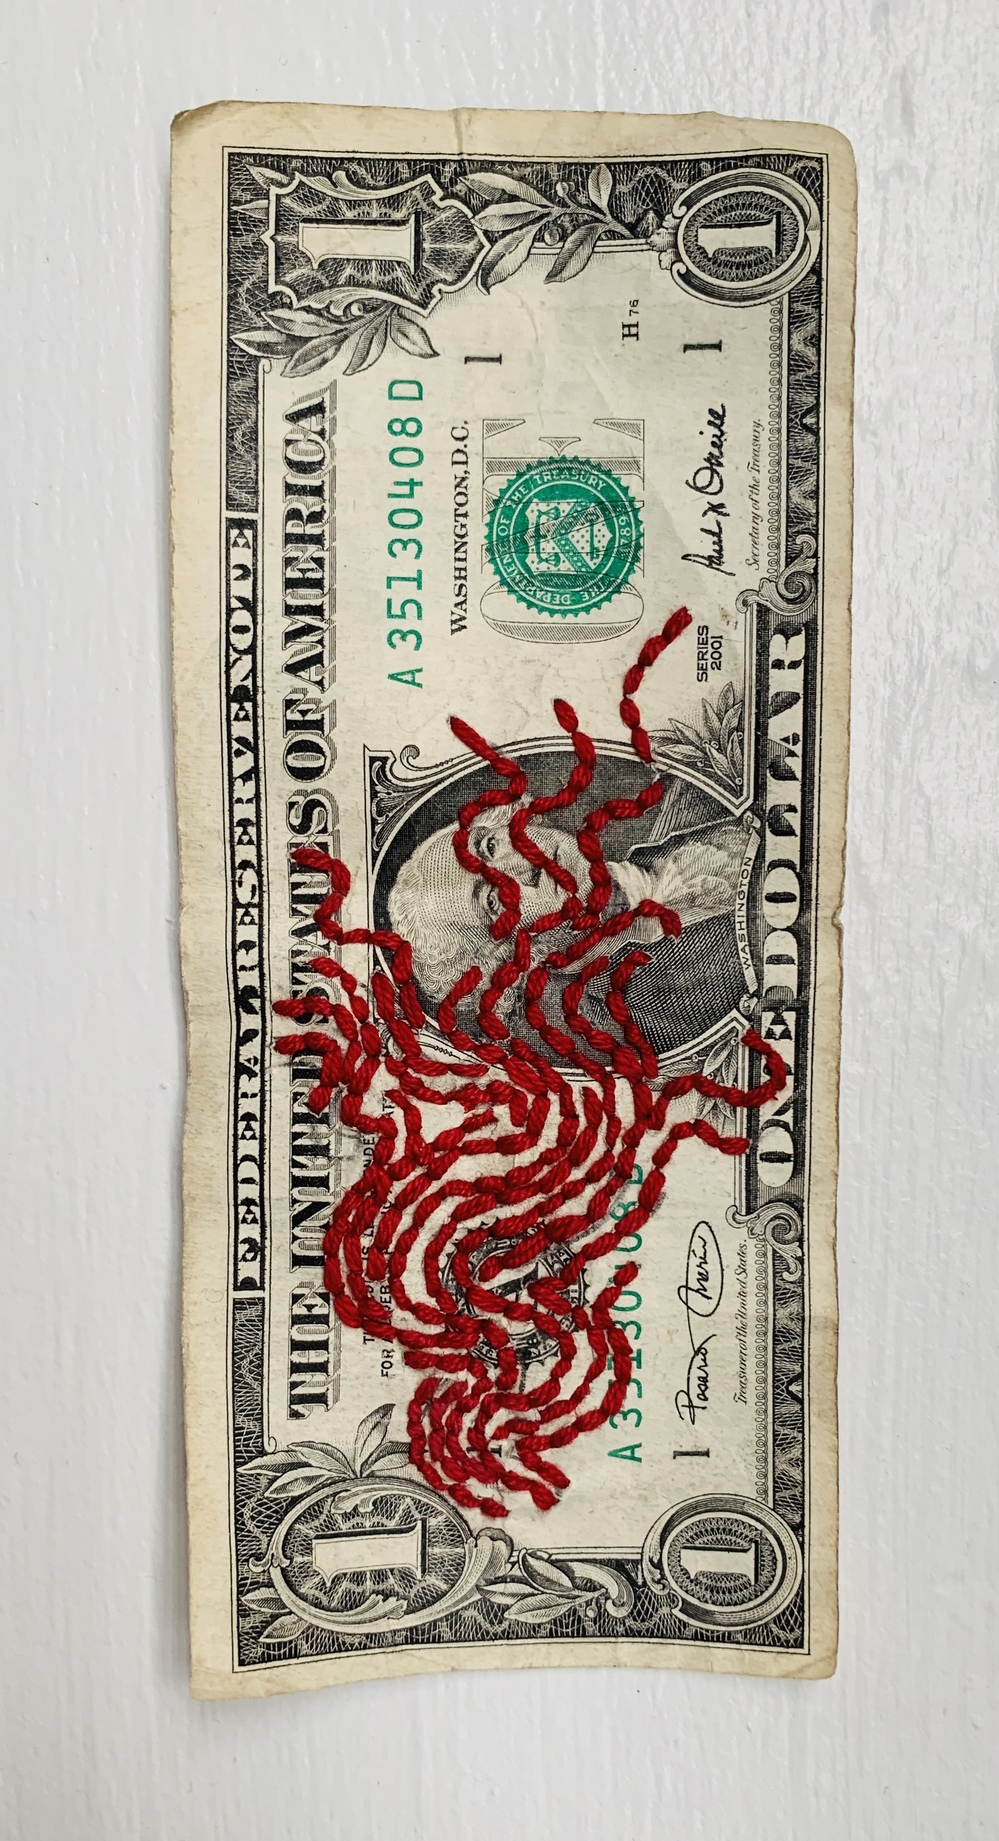 Embroidery: Blood Clouds & Dollar bills   - 2004 to 2009 Flaming Dollar